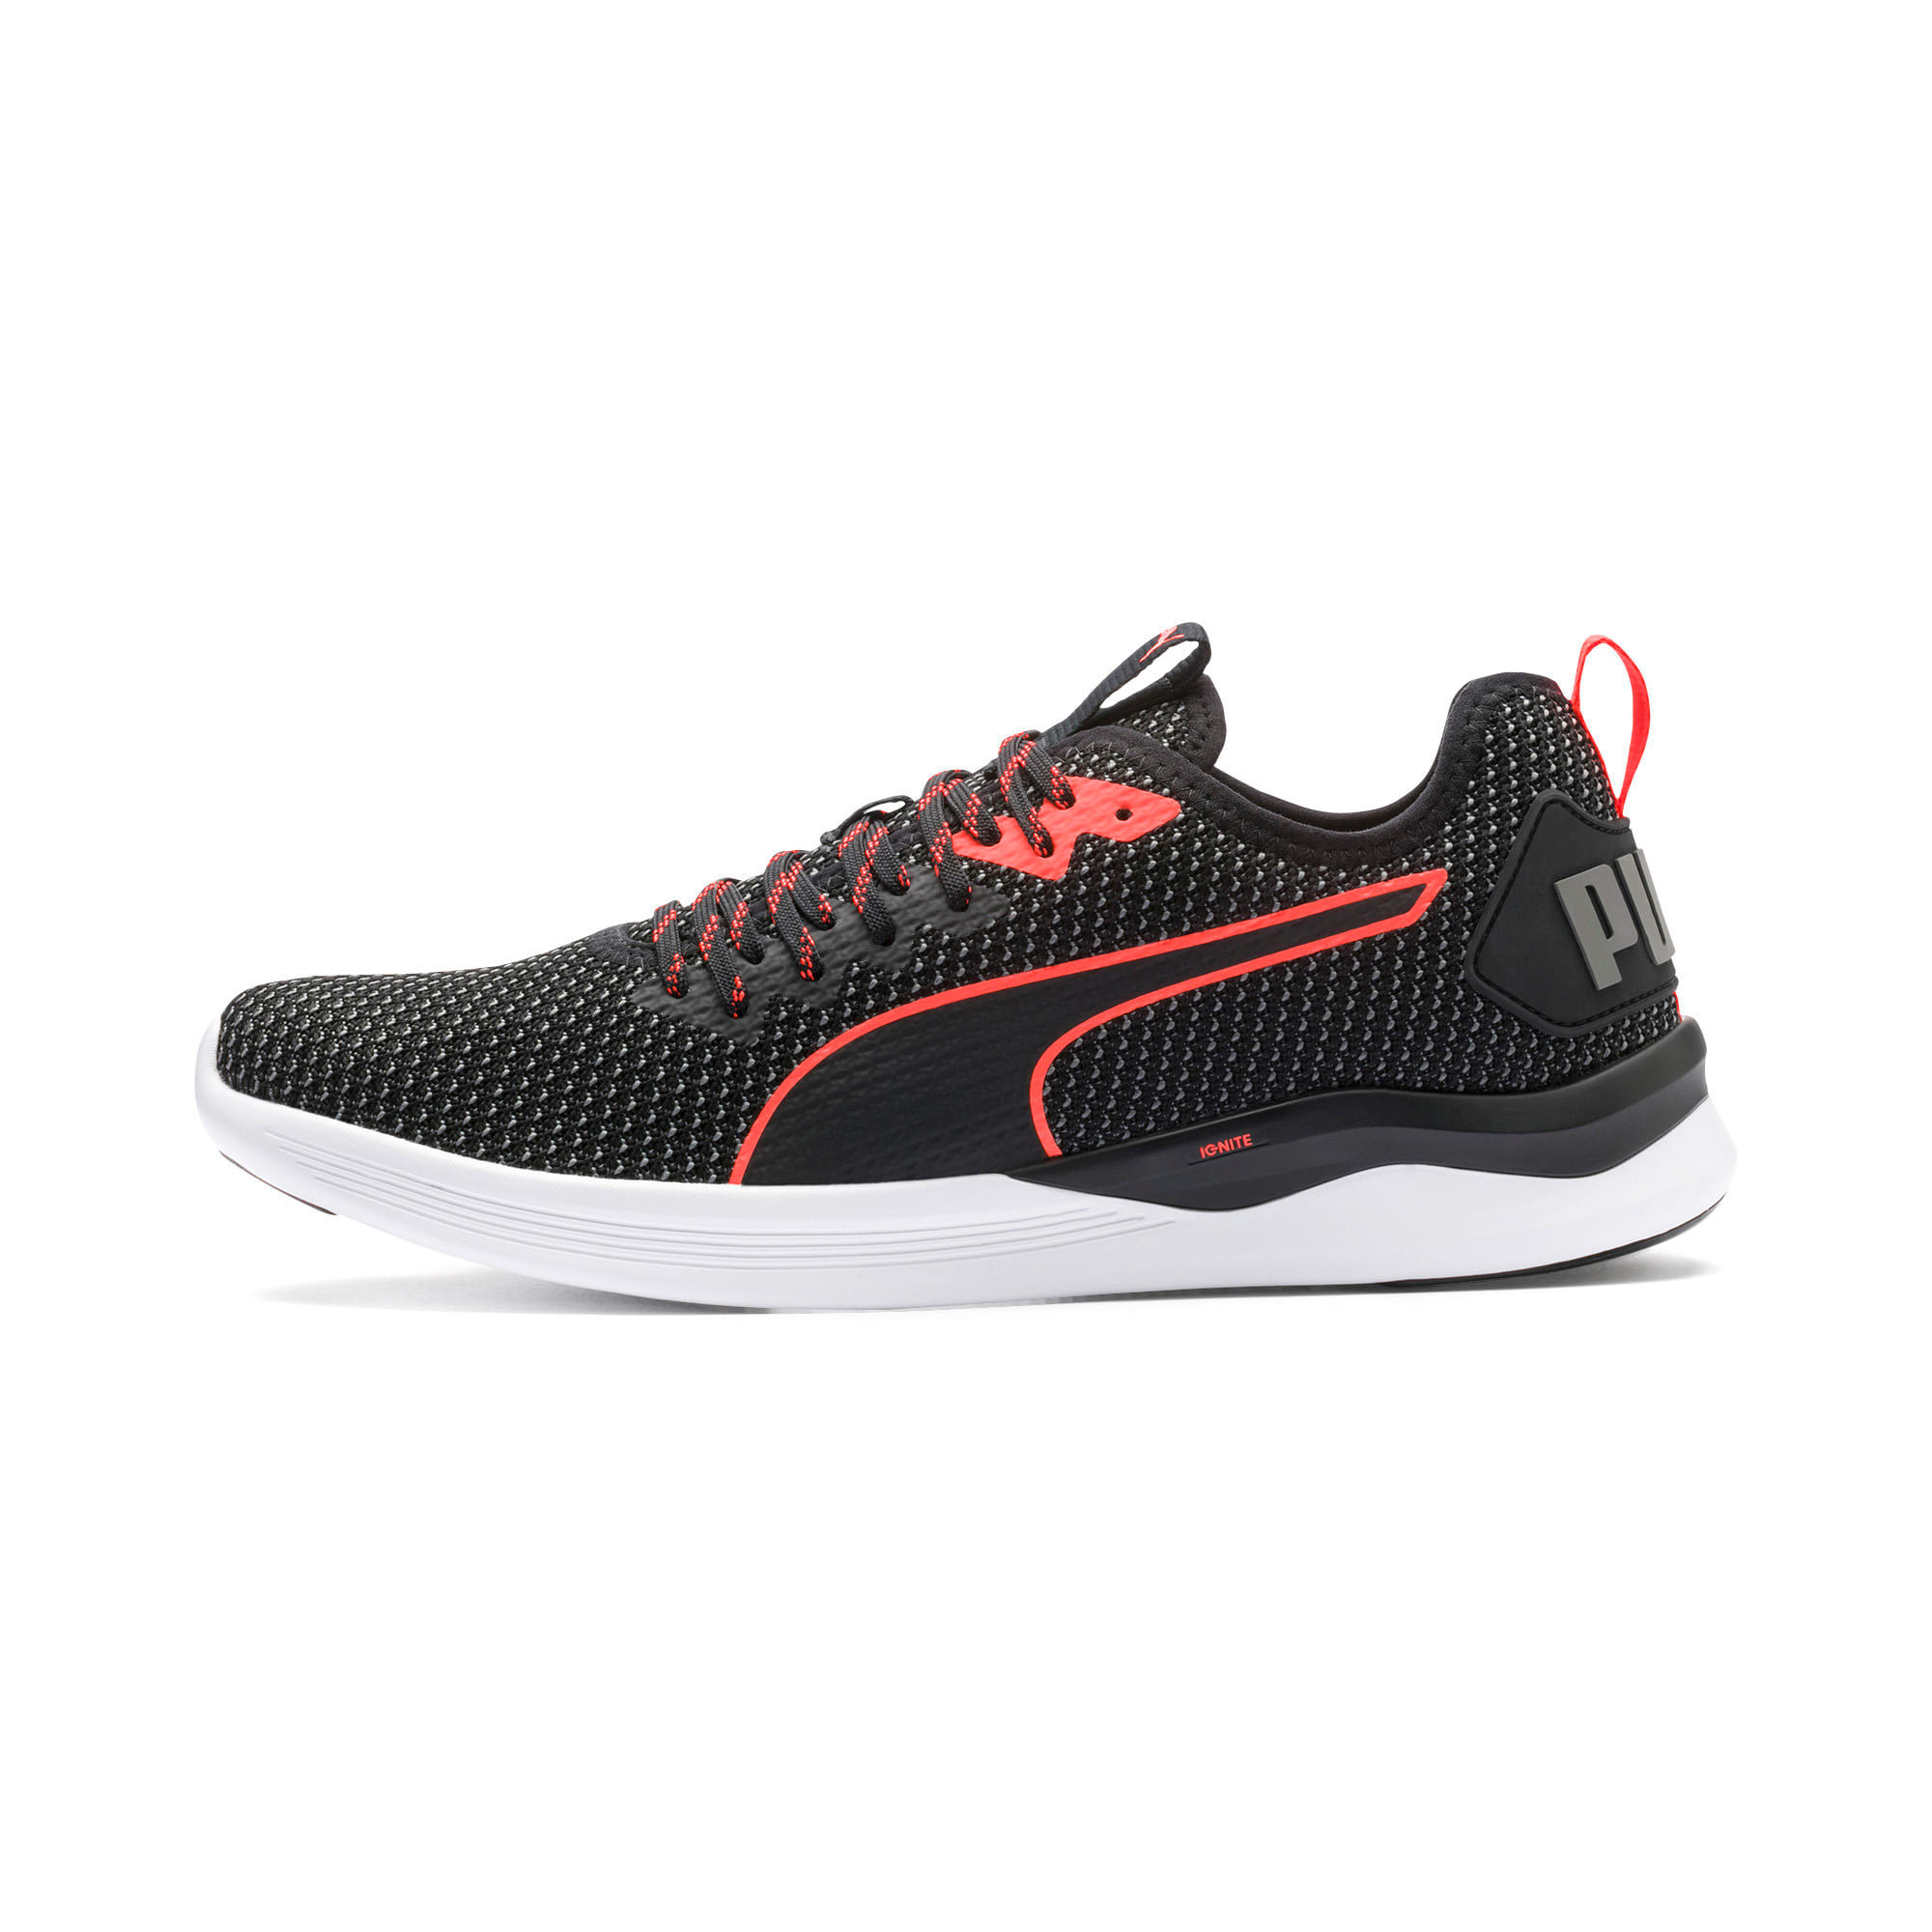 Thumbnail 1 of Scarpe Running IGNITE Flash FS uomo, Puma Black-Nrgy Red, medium